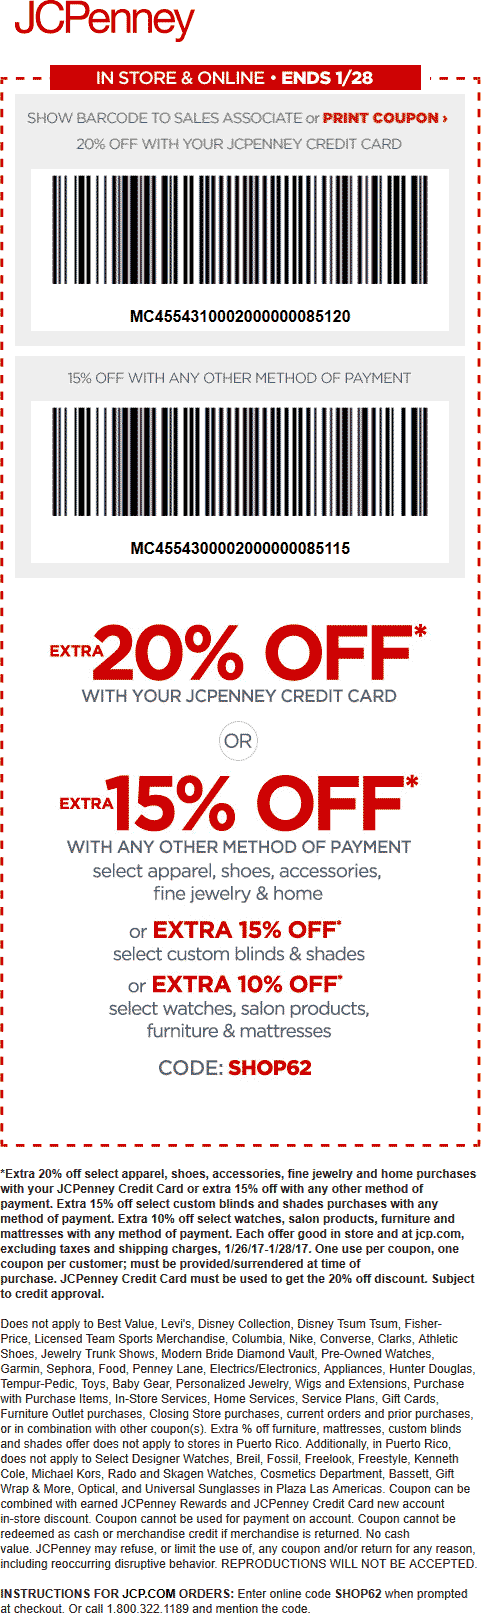 JCPenney Coupon December 2018 15% off at JCPenney, or online via promo code SHOP62